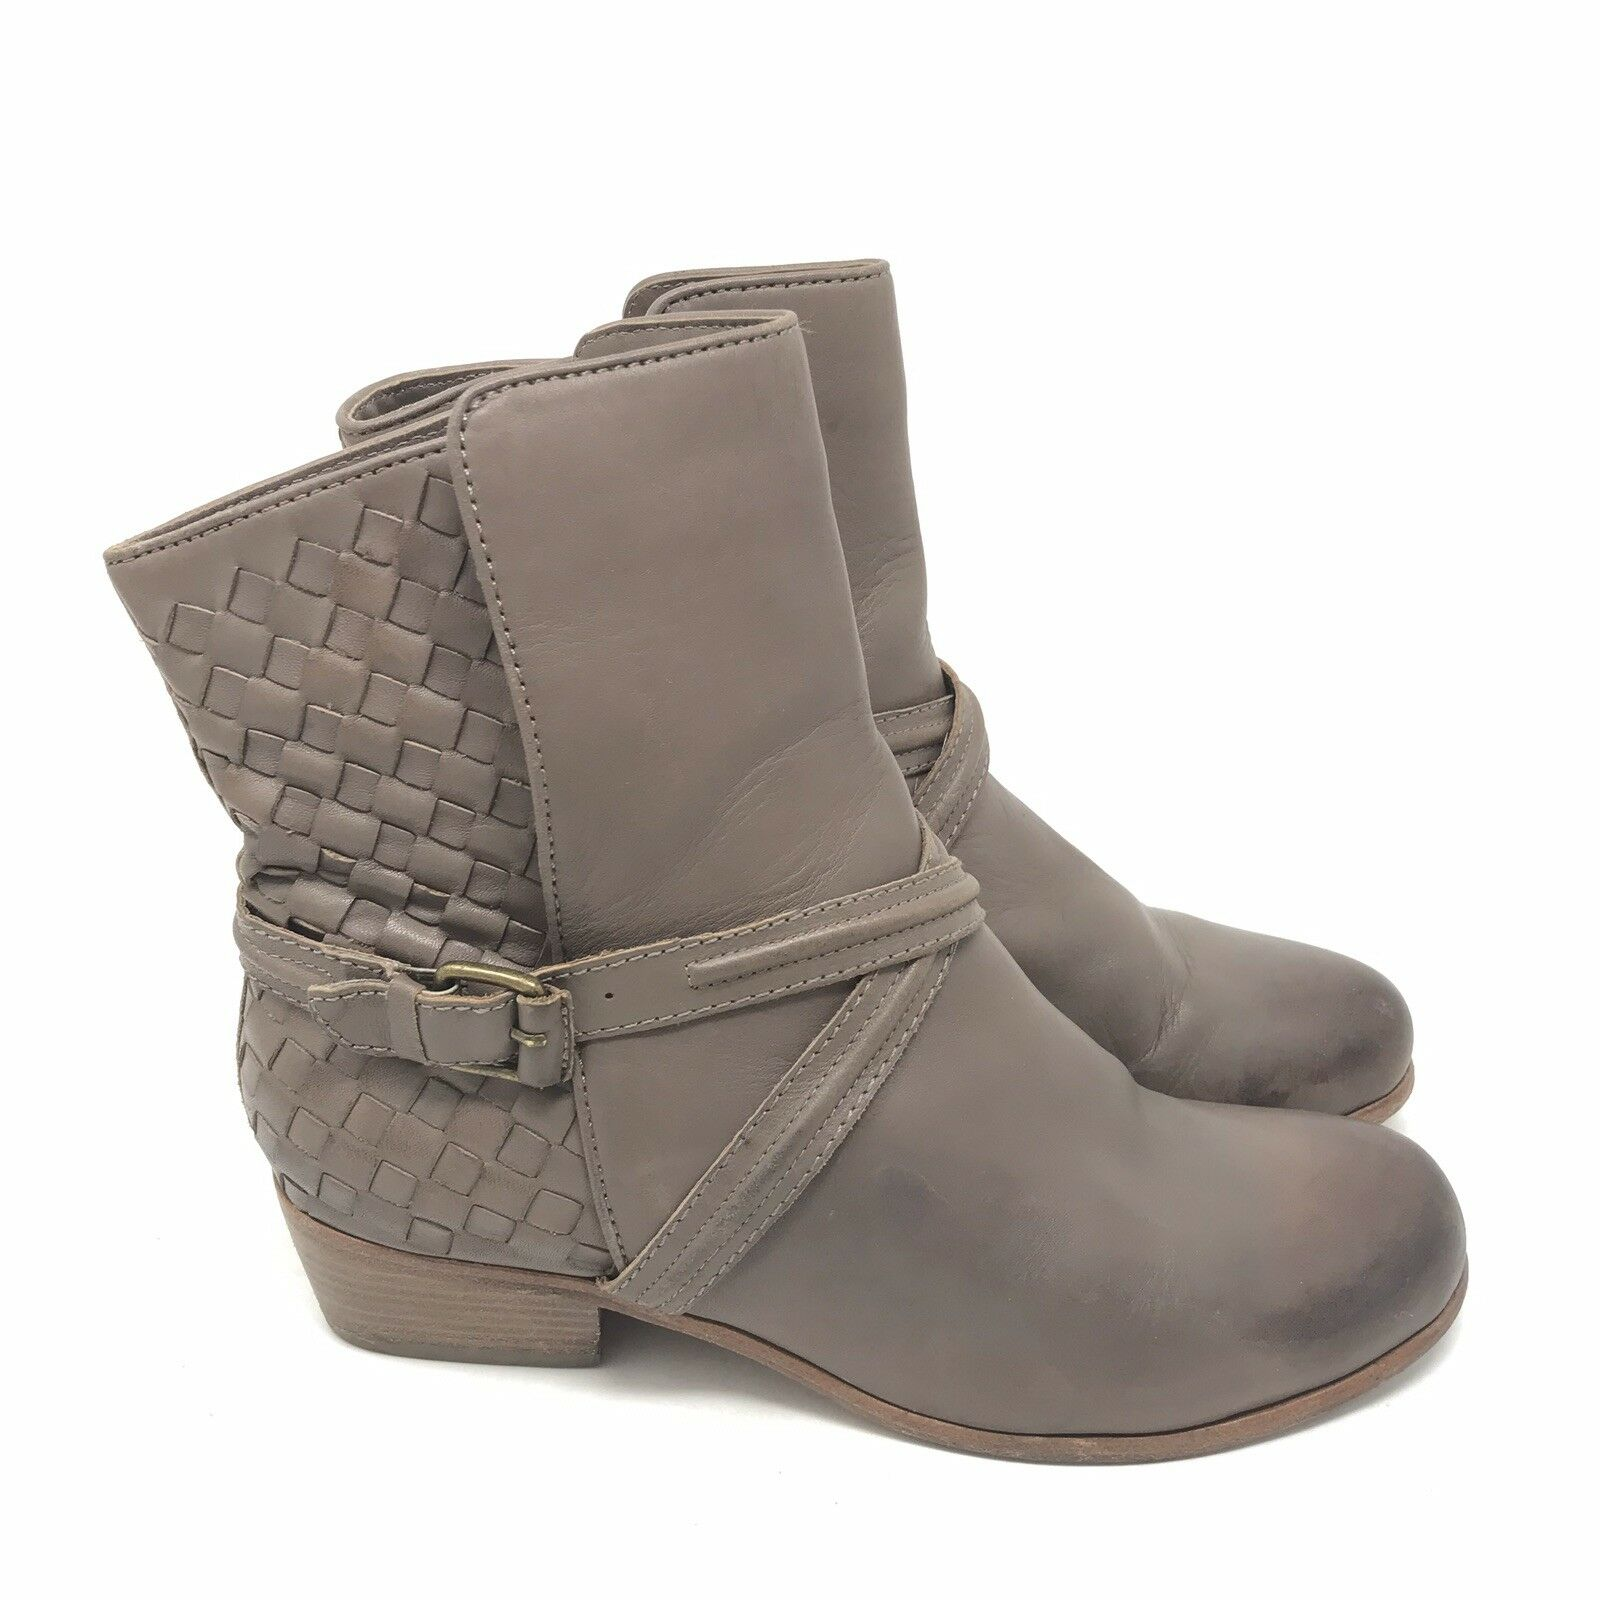 Joie Stiefel Größe 7.5 37.5 Jackson Dove Taupe Woven Leather Ankle Harness Distress